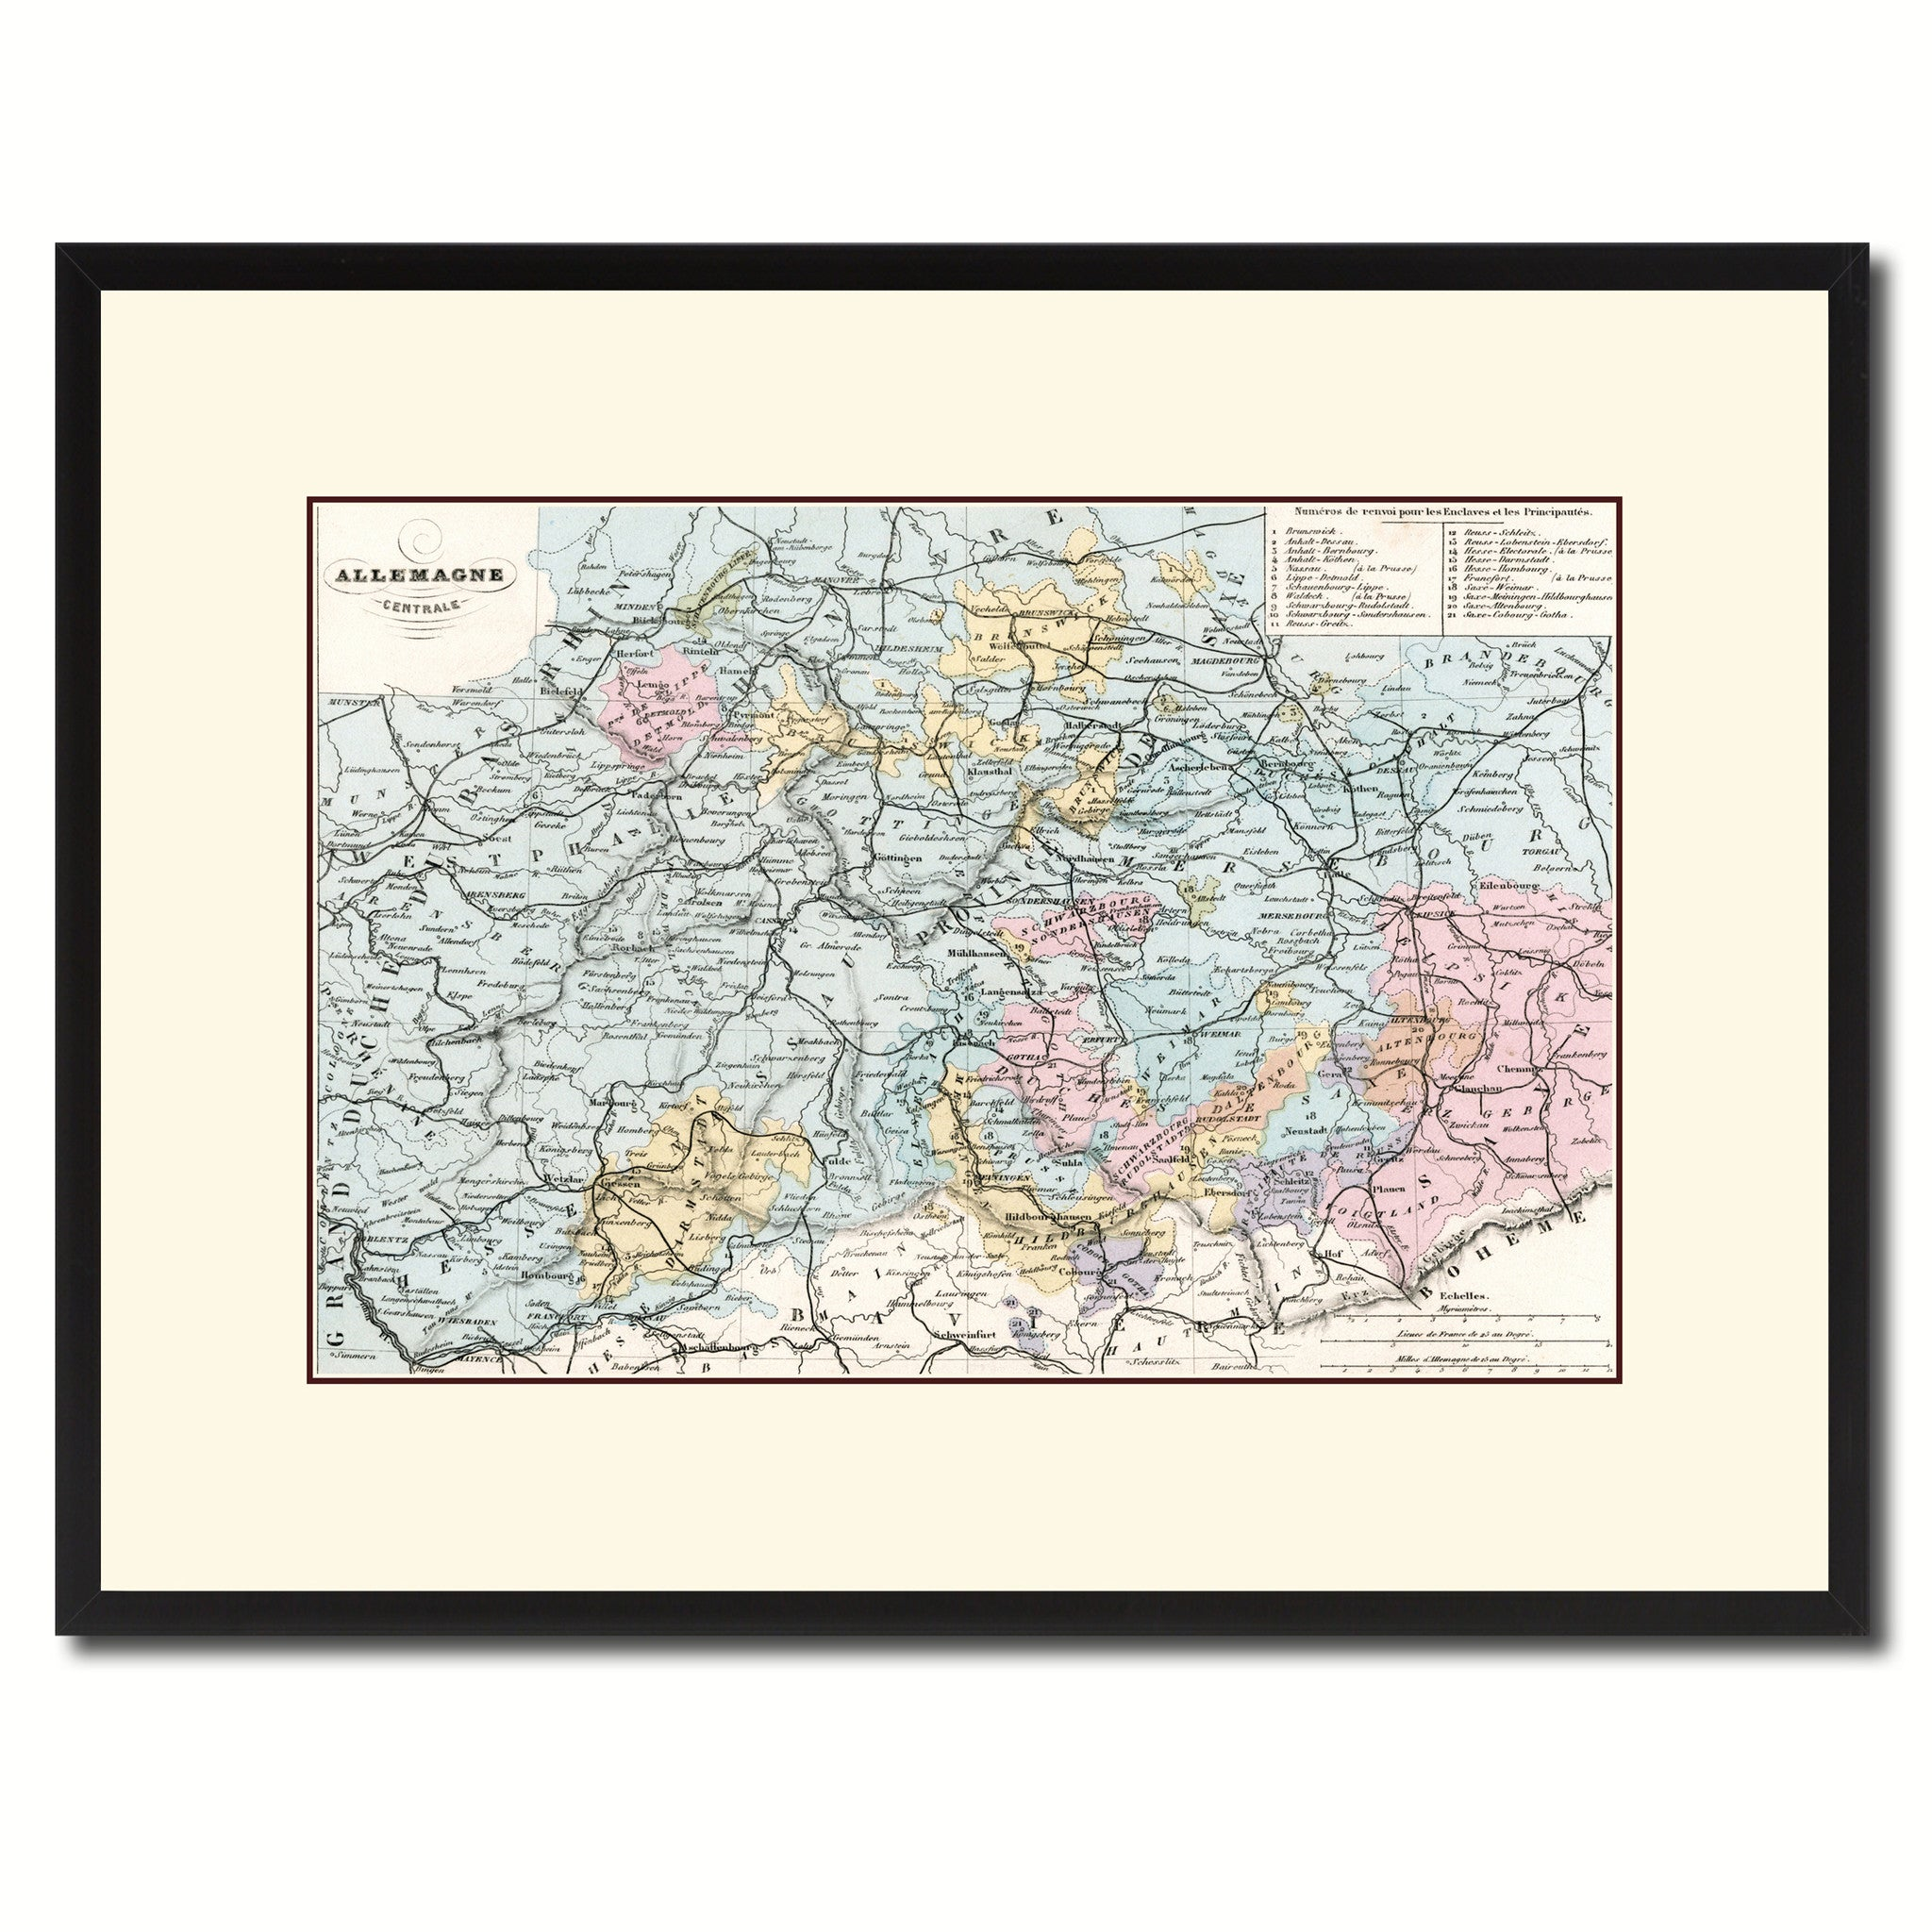 Central Germany Map.Central Germany Vintage Antique Map Wall Art Bedroom Home Decor Gift